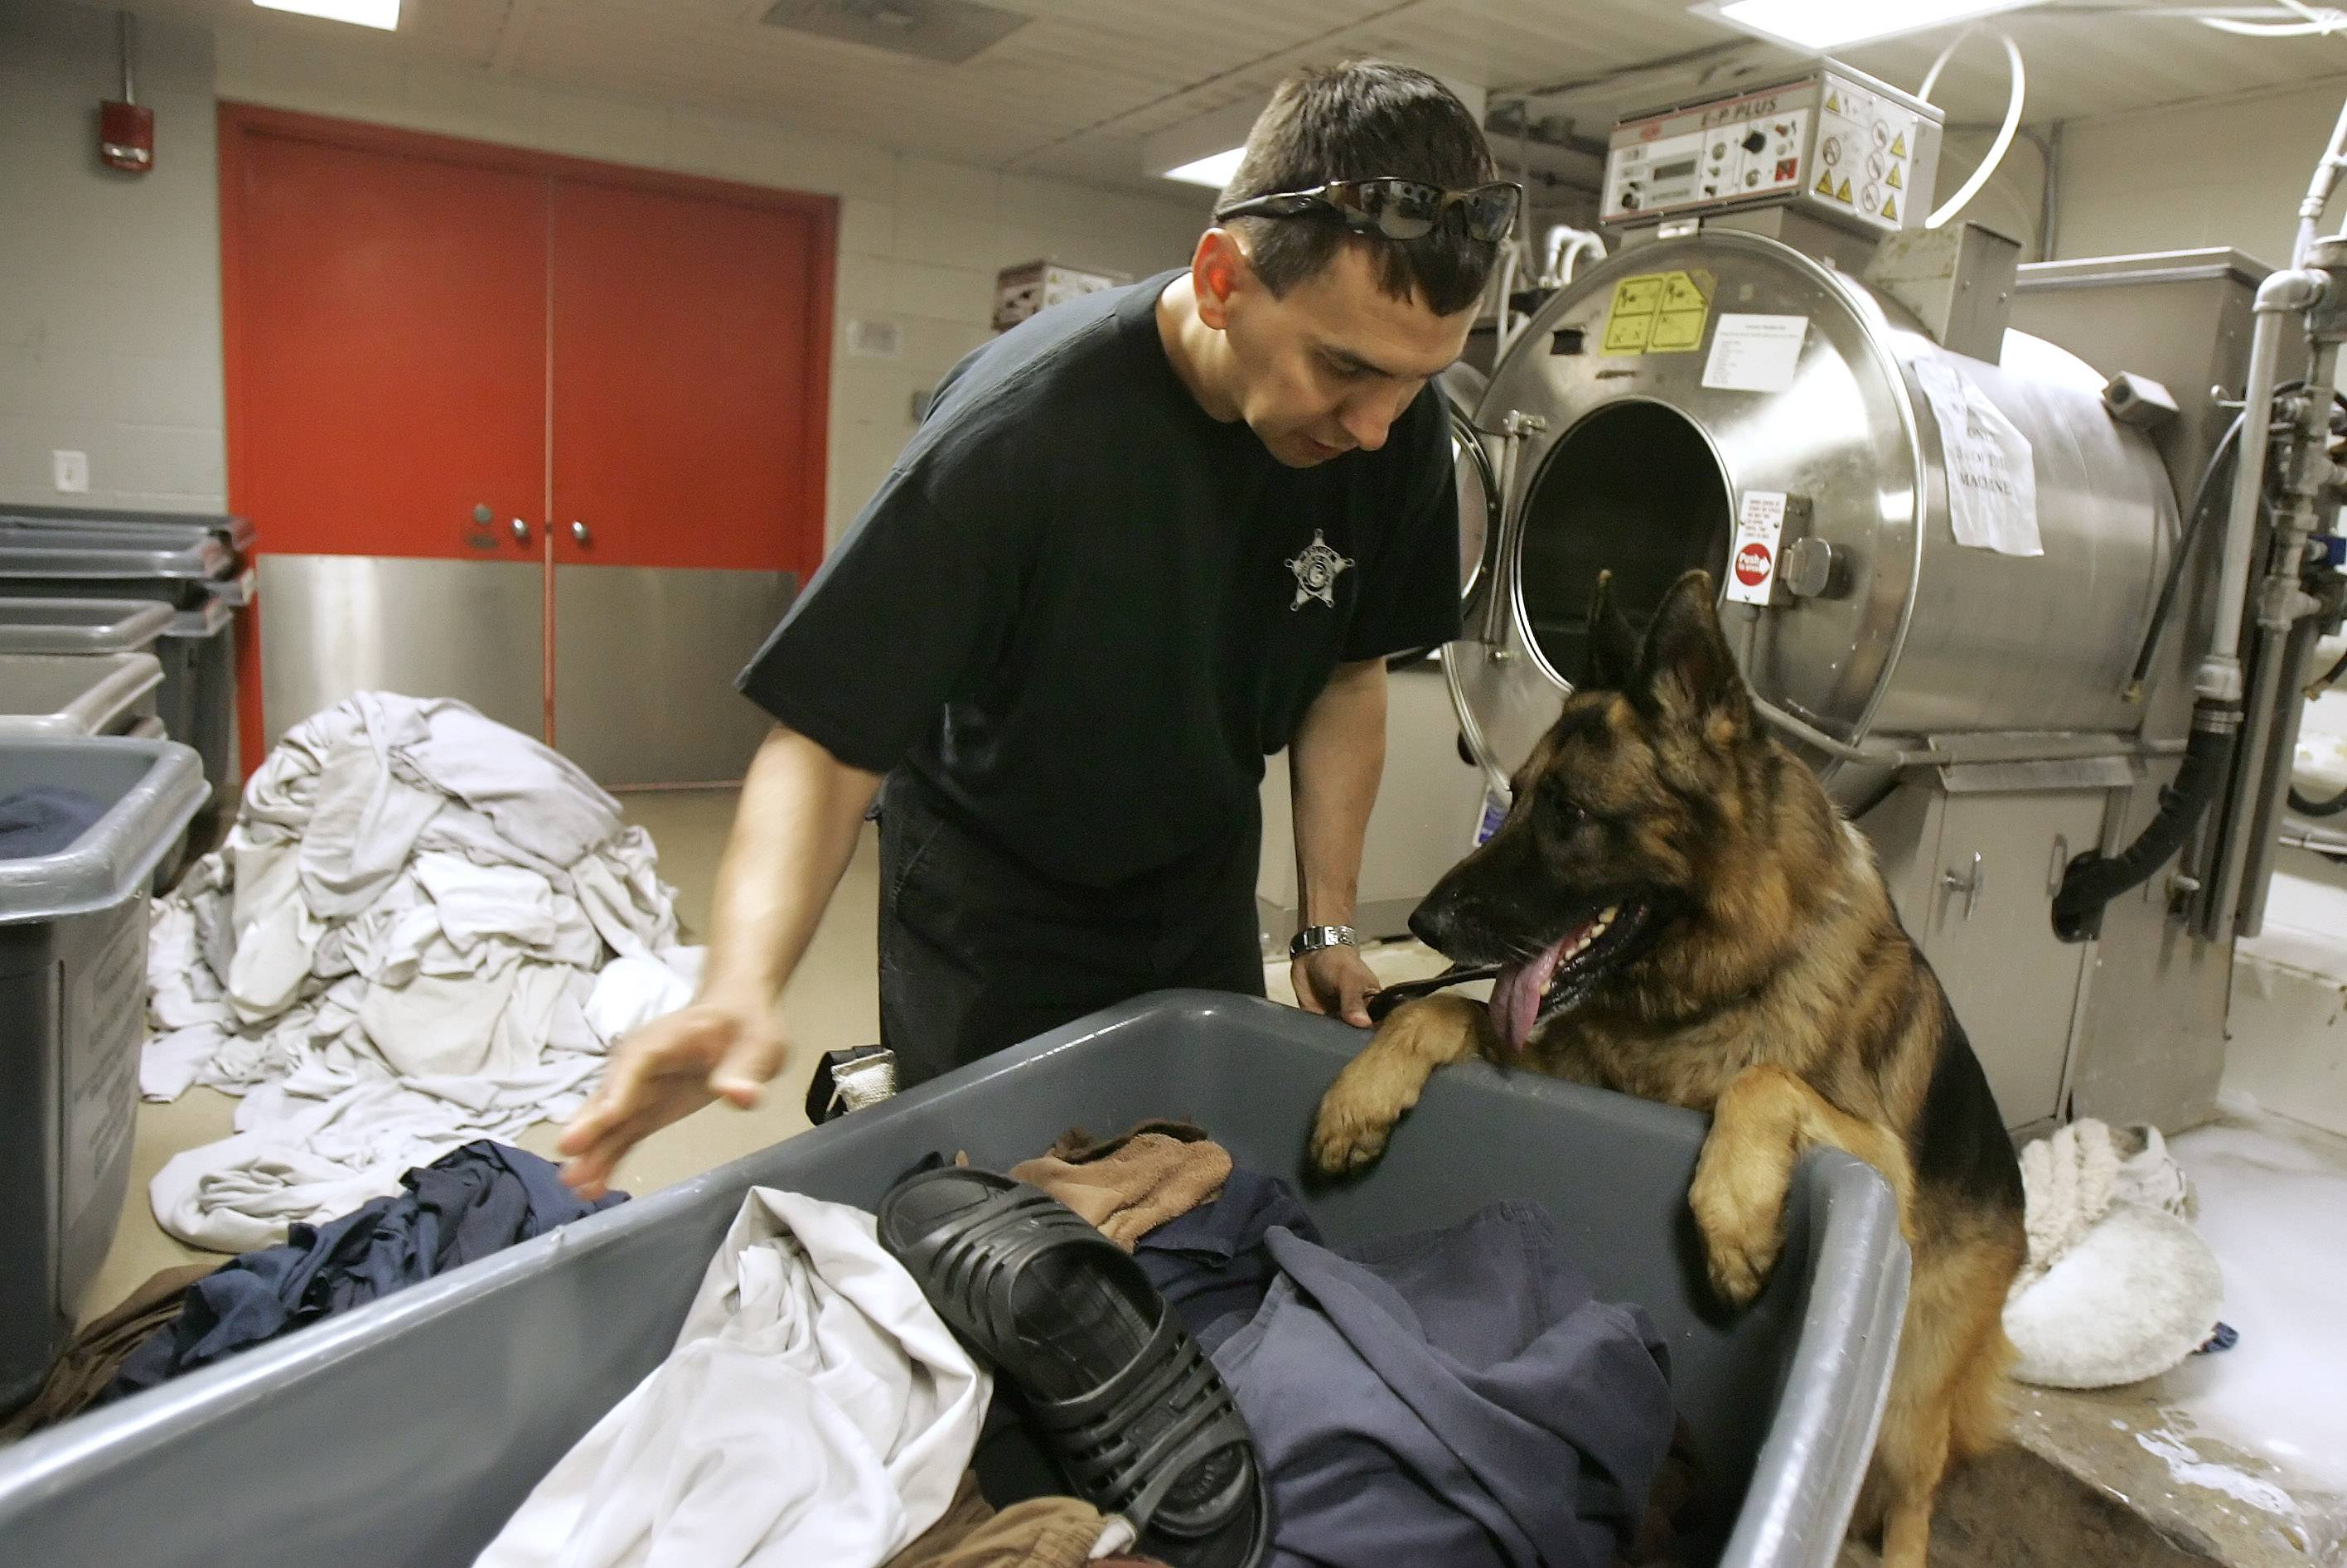 Gurnee police dog Shane, a German shepherd, handled many calls in his eight years with the department. Here handler Officer Philip Mazur is with Shane to search a laundry room for surprise drug and weapons sweep at the Lake County jail.